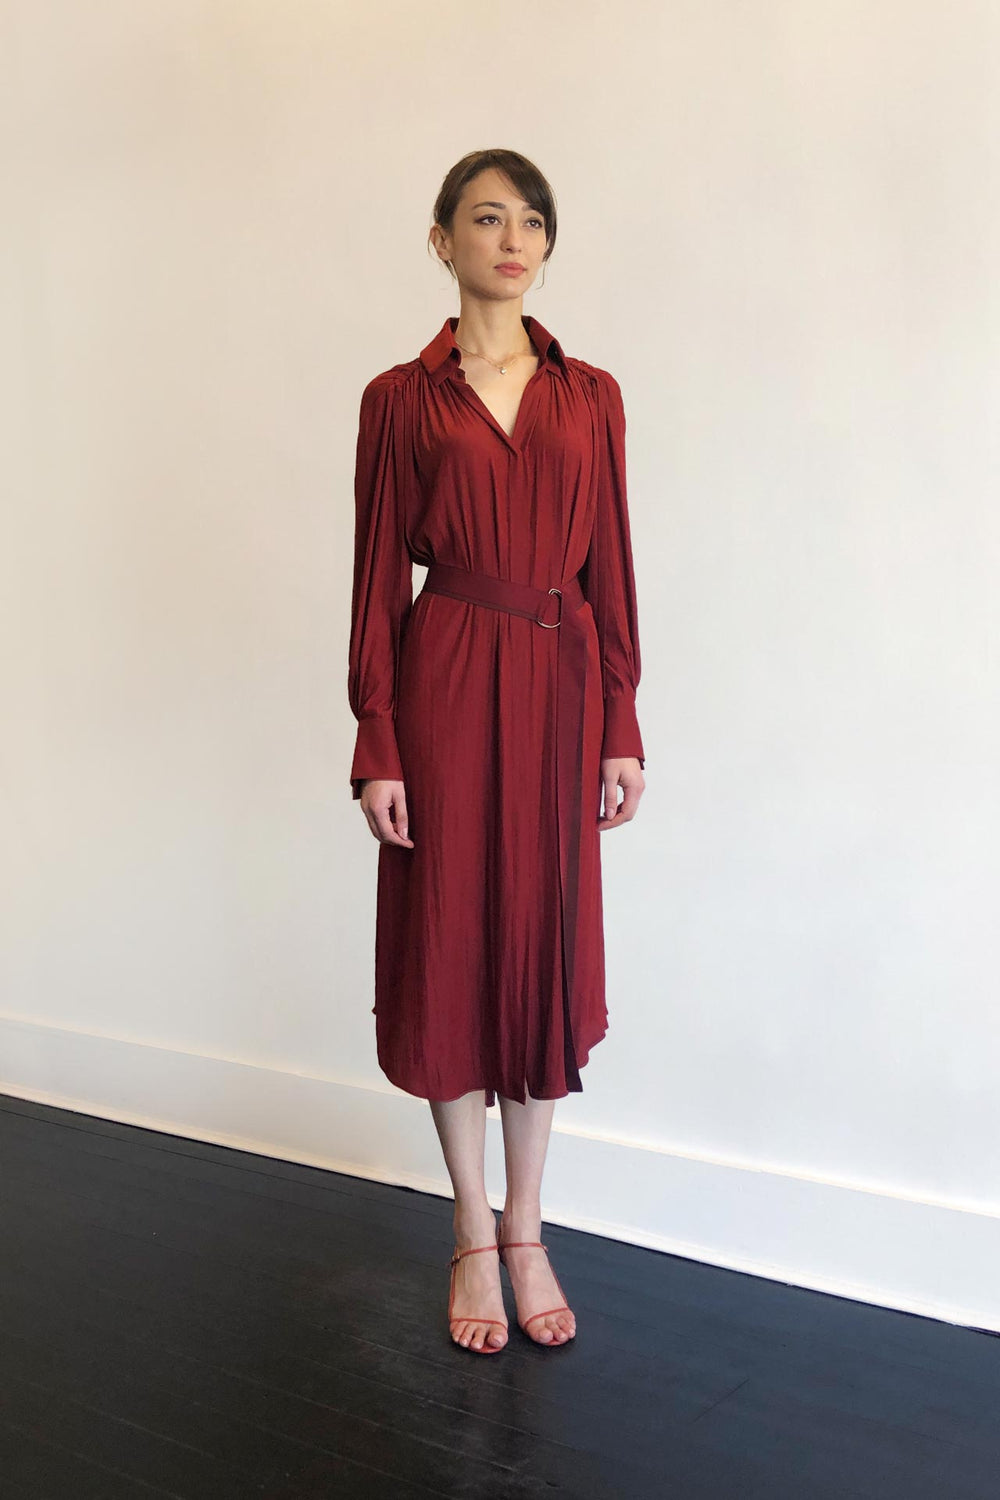 Fashion Designer CARL KAPP collection | Pheasant Onesize Fits All cocktail dress with sleeves Red | Sydney Australia